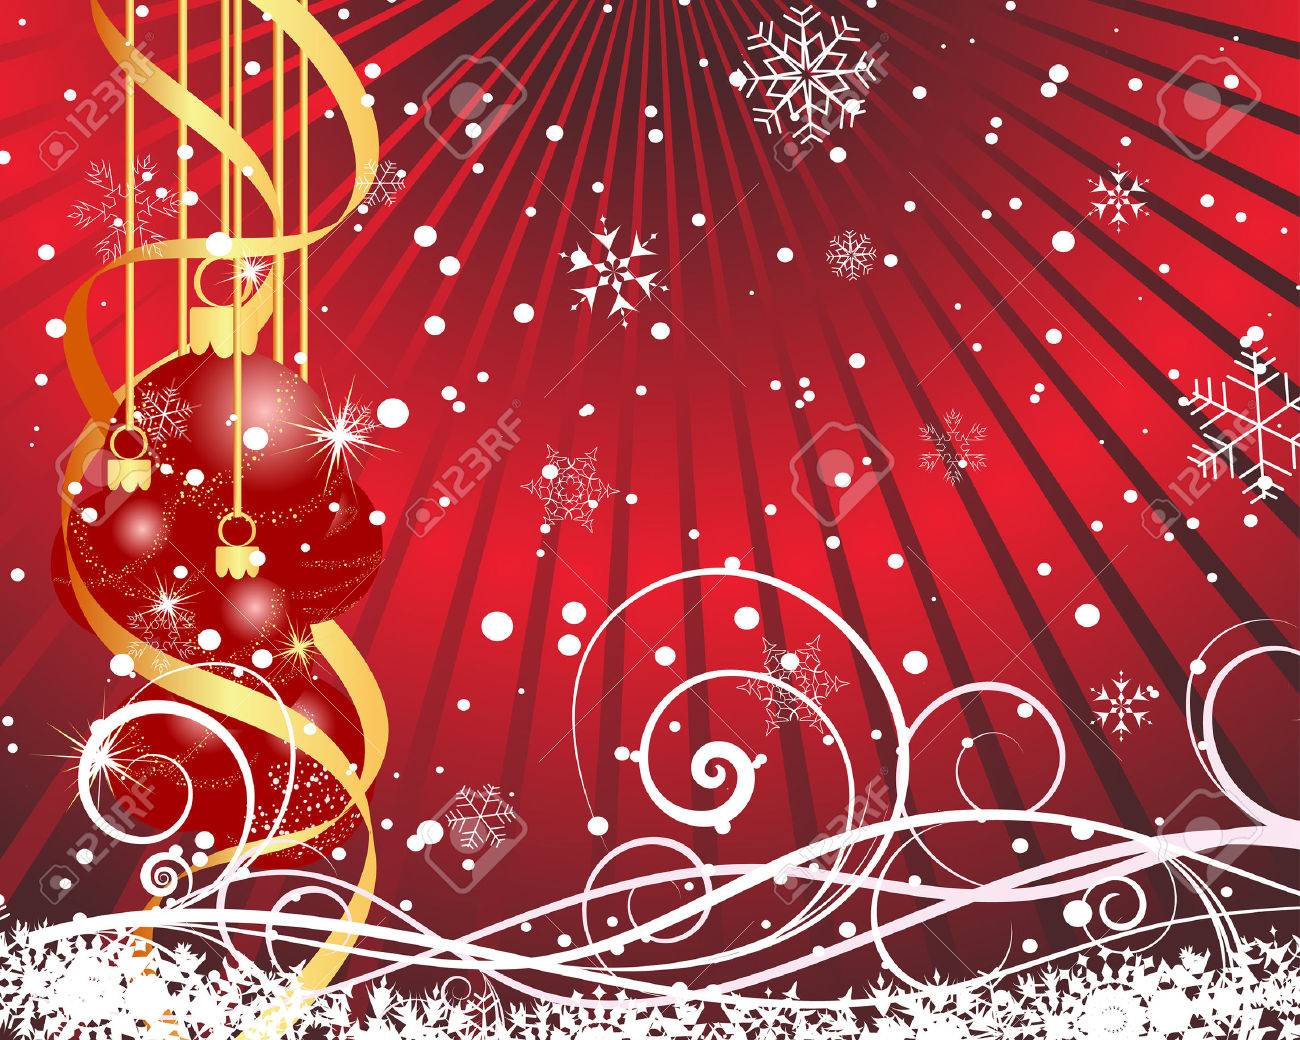 Beautiful vector christmas new year background for design use - Beautiful Vector Christmas New Year Background For Design Use Stock Vector 5868448